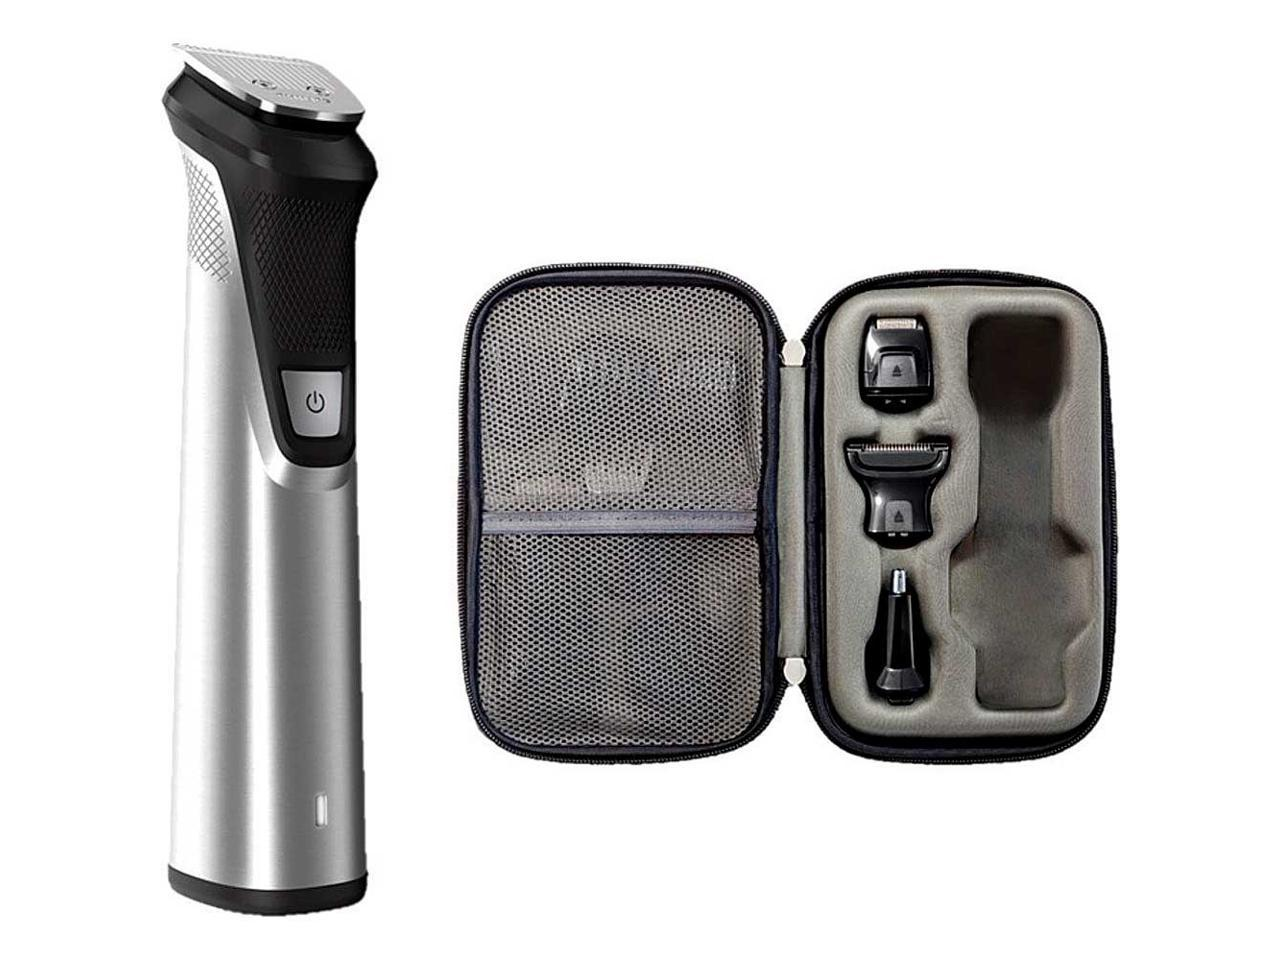 Philips Norelco Multigroom Series 9000 All-in-One Trimmer MG7770/49